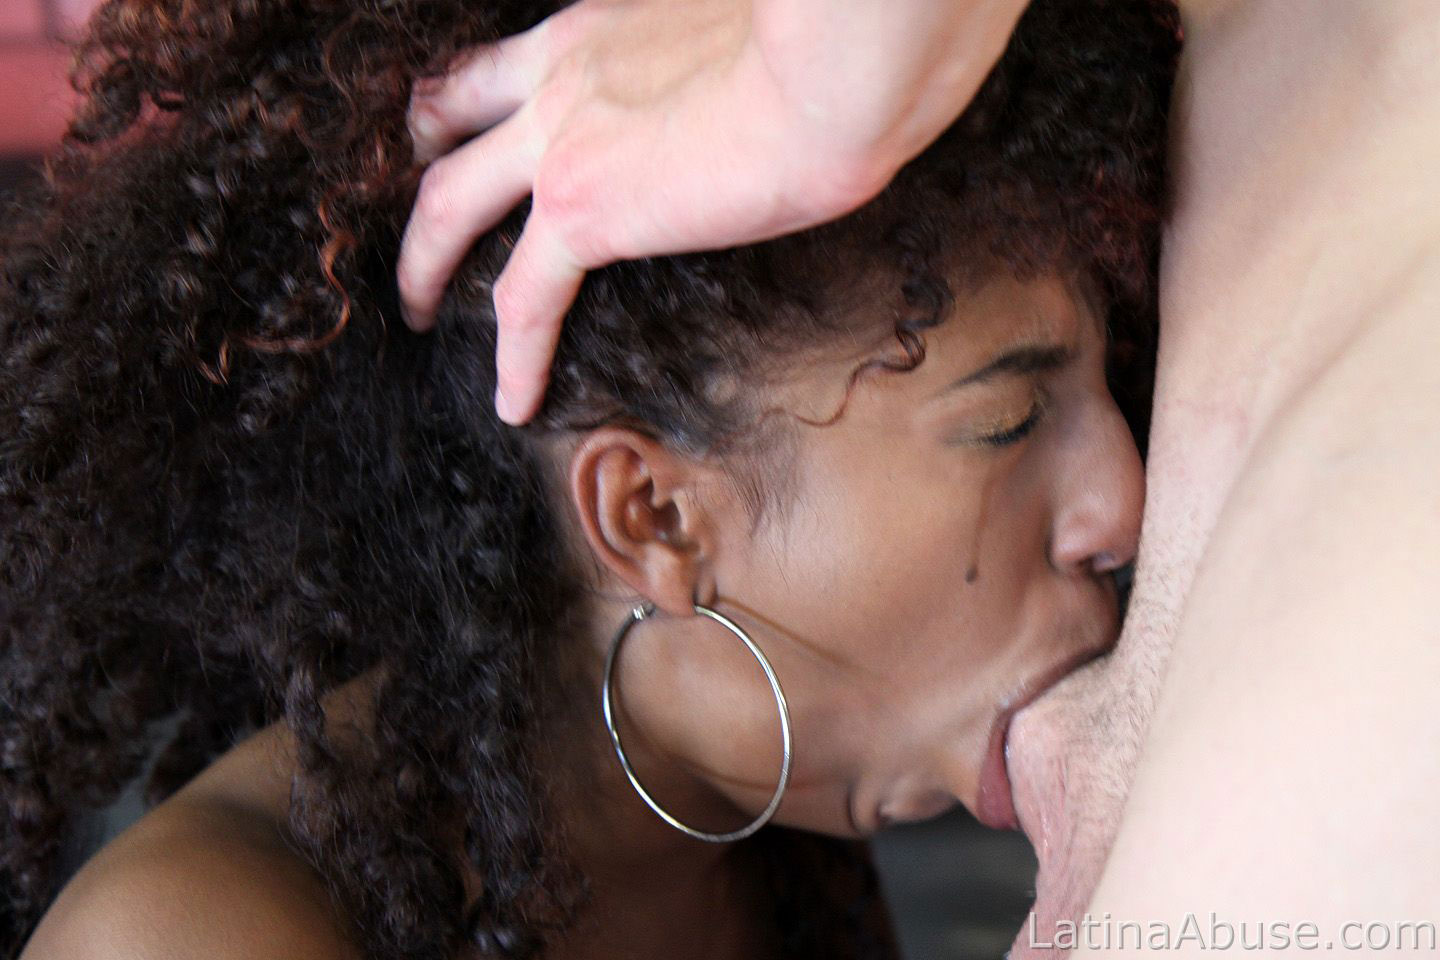 amelia latina facial - Latina Whore Abused Attractive For Obscenewatch More Free Extreme Porn  Videos Here Latina Whore Lily Charms